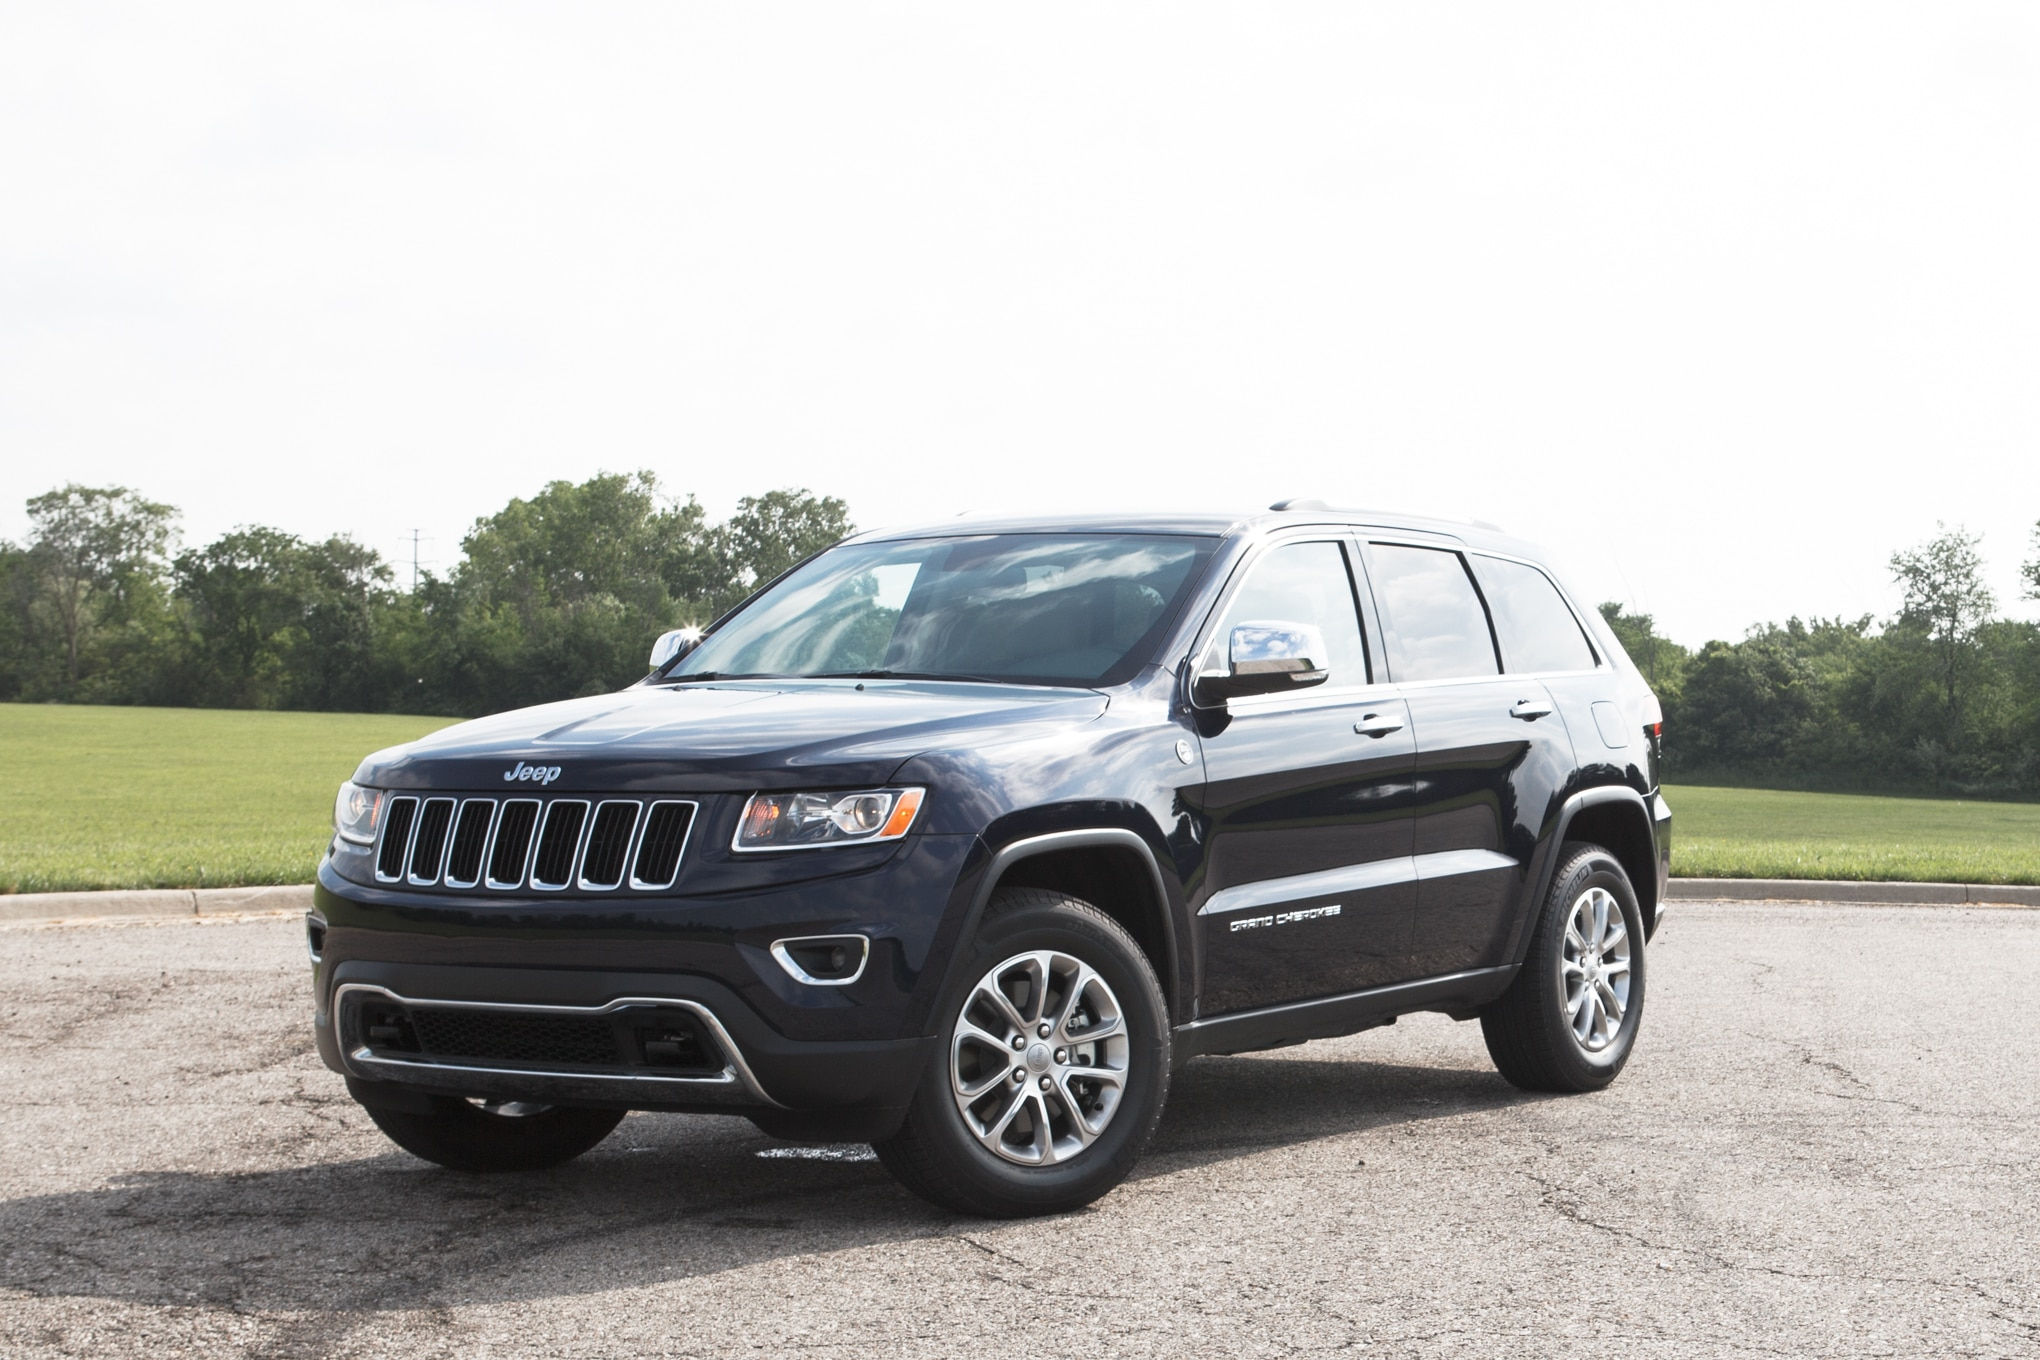 2014 Jeep Grand Cherokee Limited 4x4 Editors Notebook